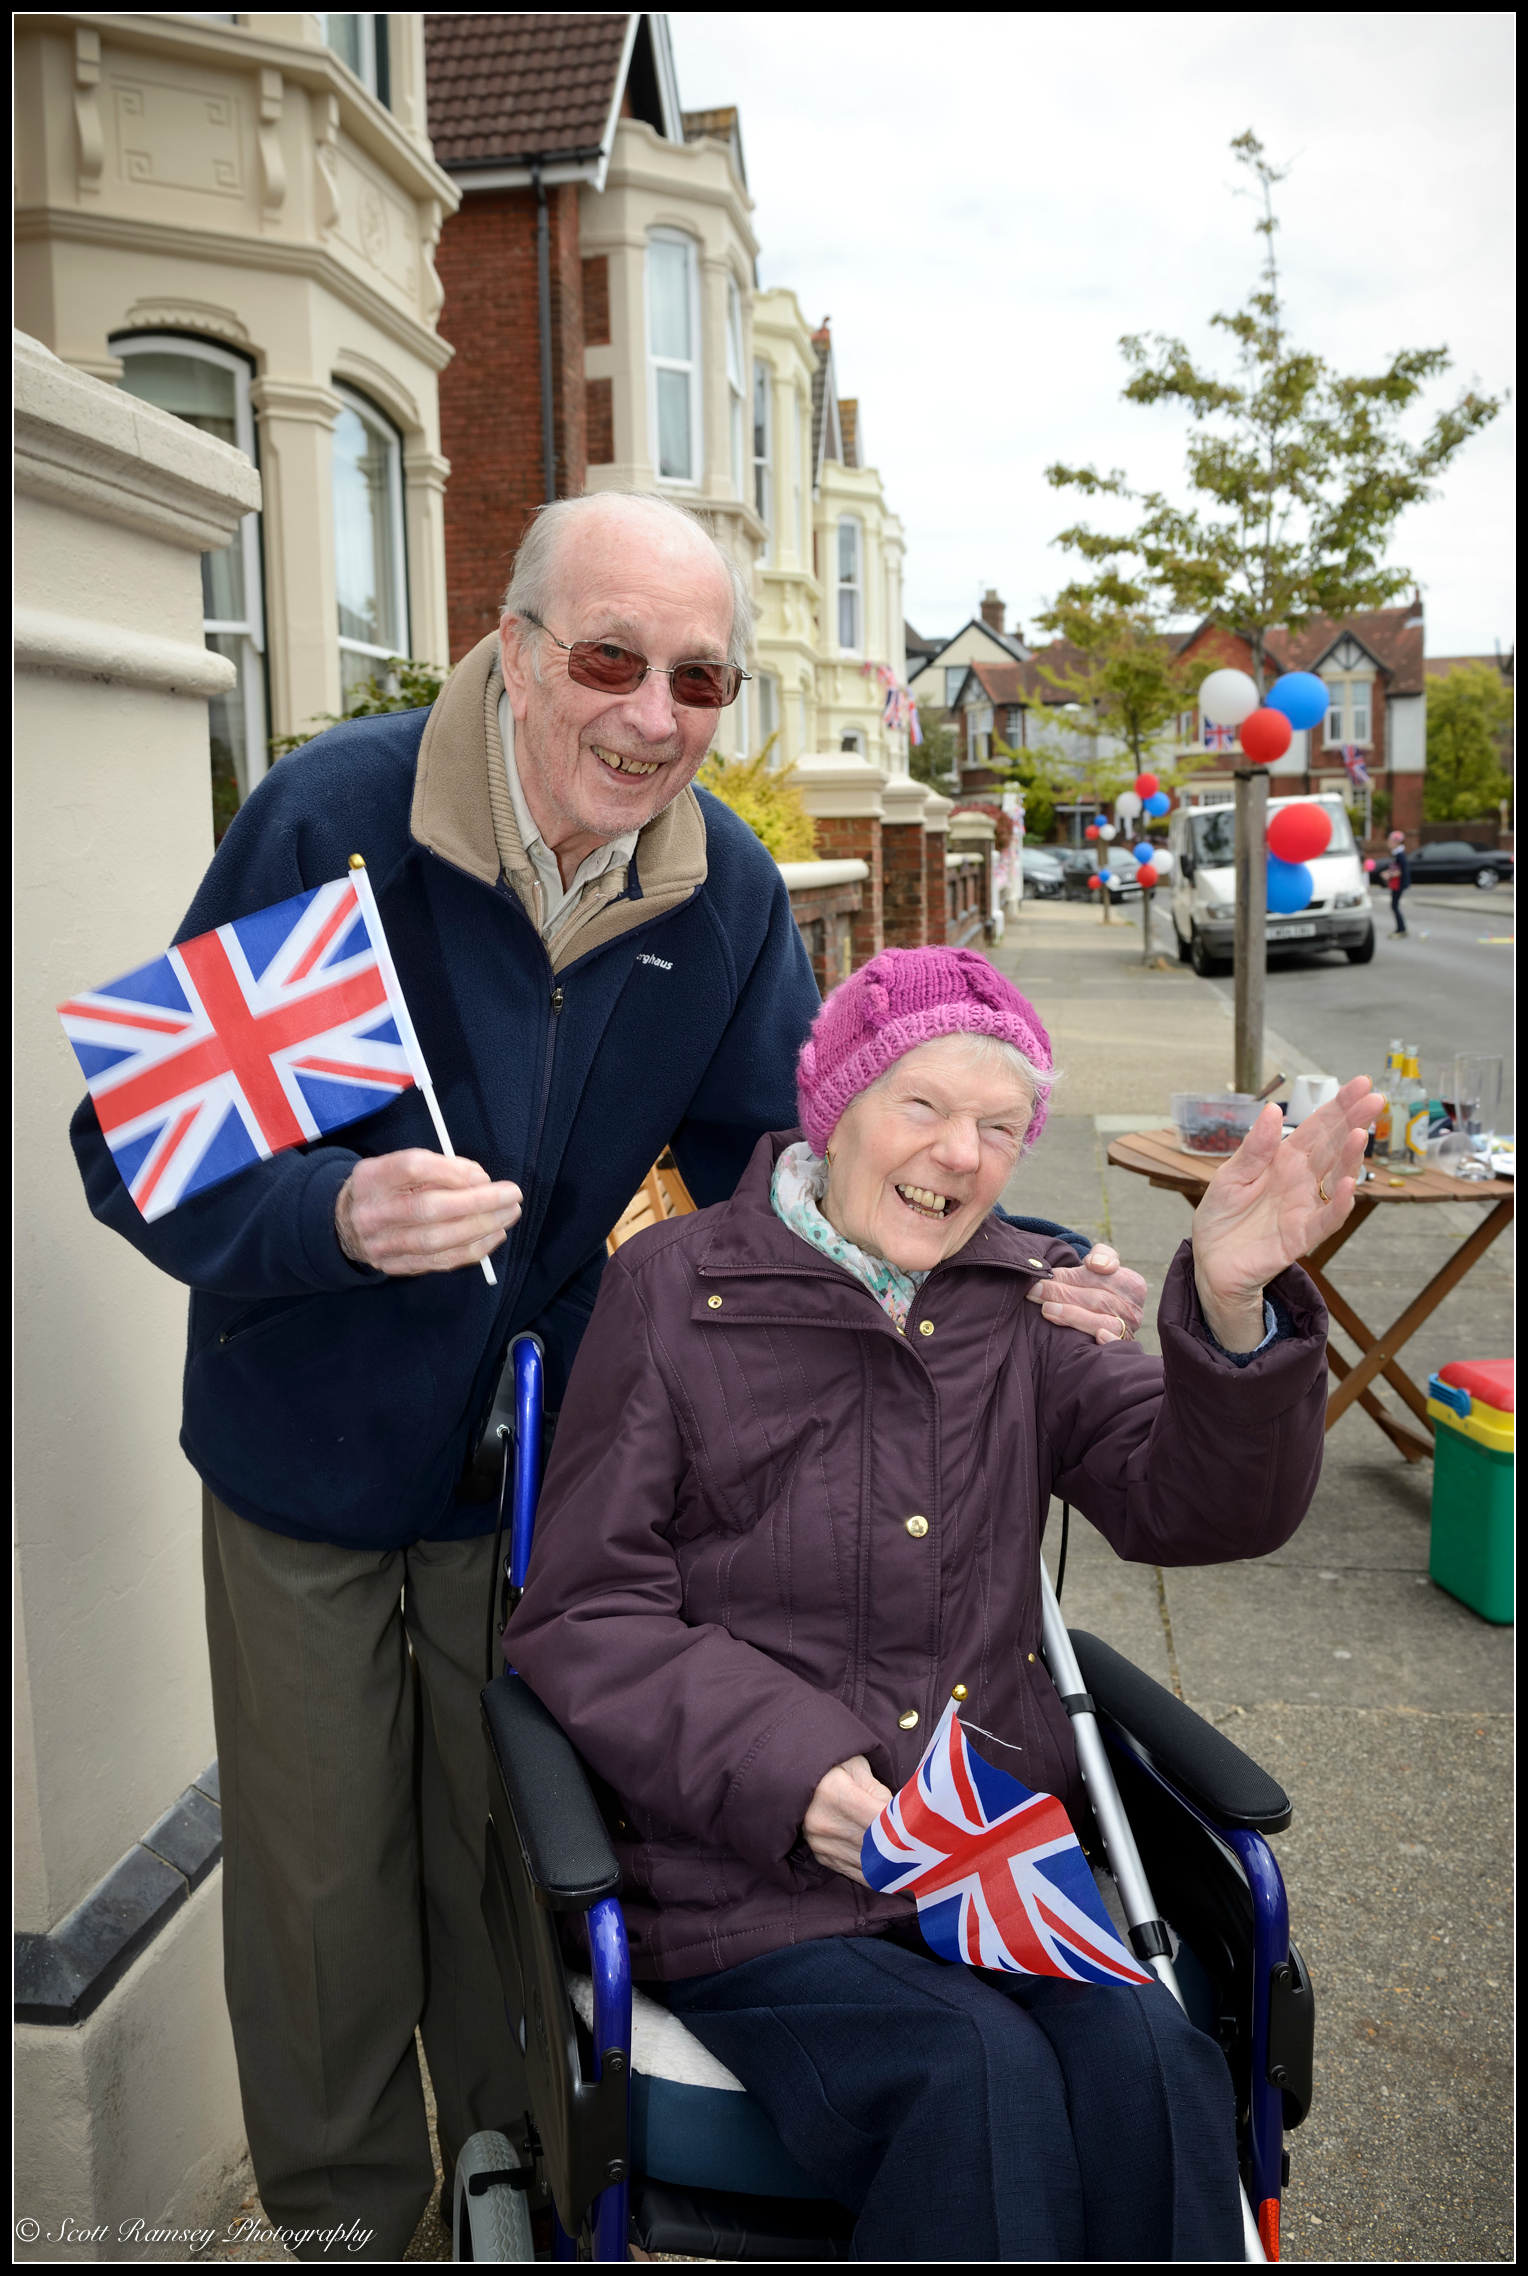 World War 2 veteran Alan Mills aged 92 (he served in the RAF) and his wife Hilda aged 86 enjoy the  VE Day street party  in Southsea, Portsmouth  . © Scott Ramsey Photography.